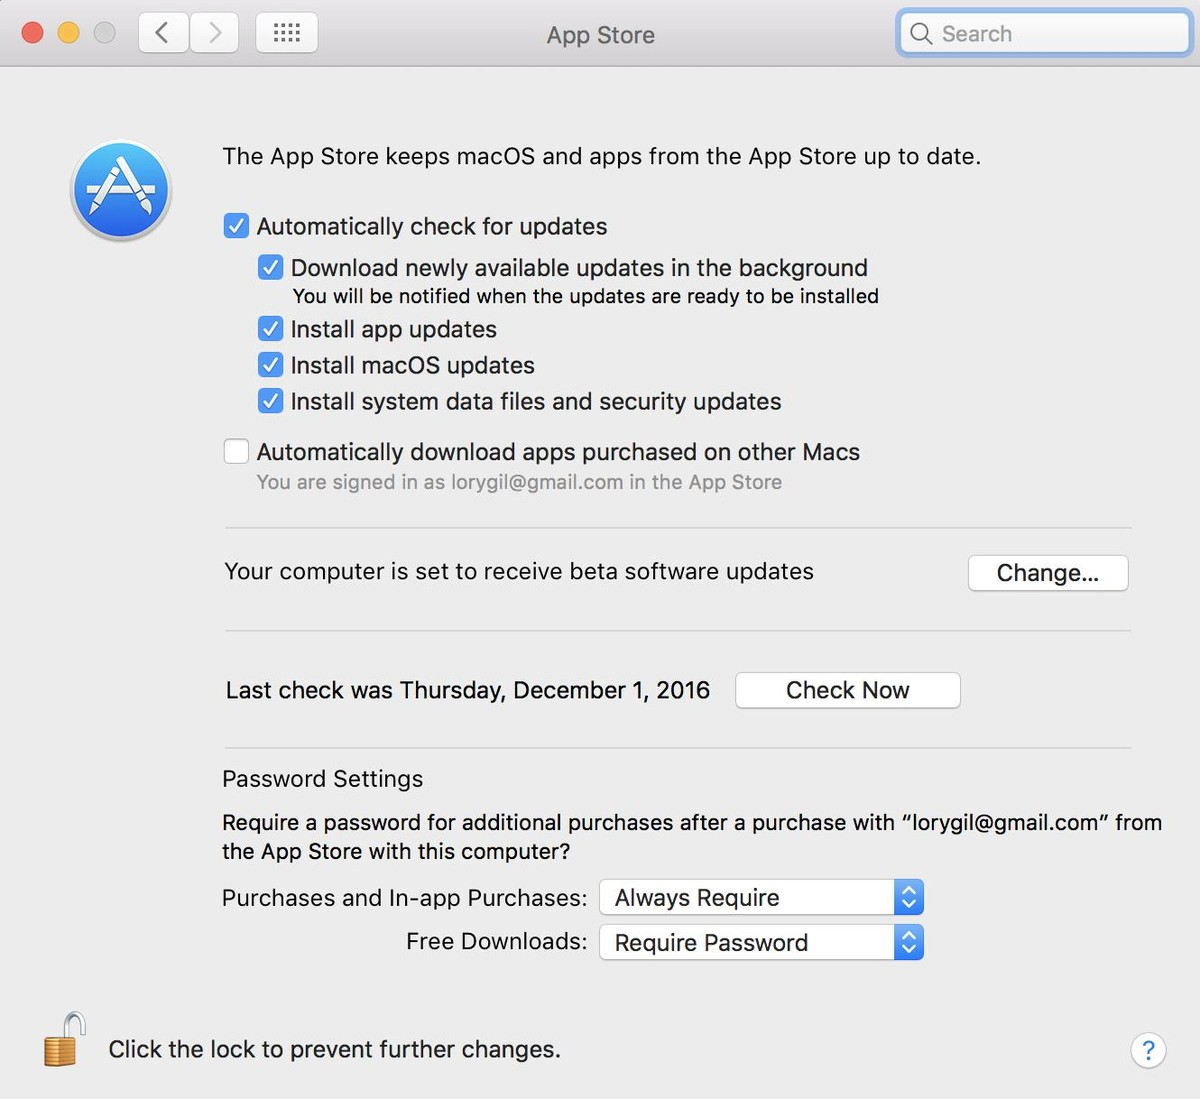 Tick the boxes for automatic updates